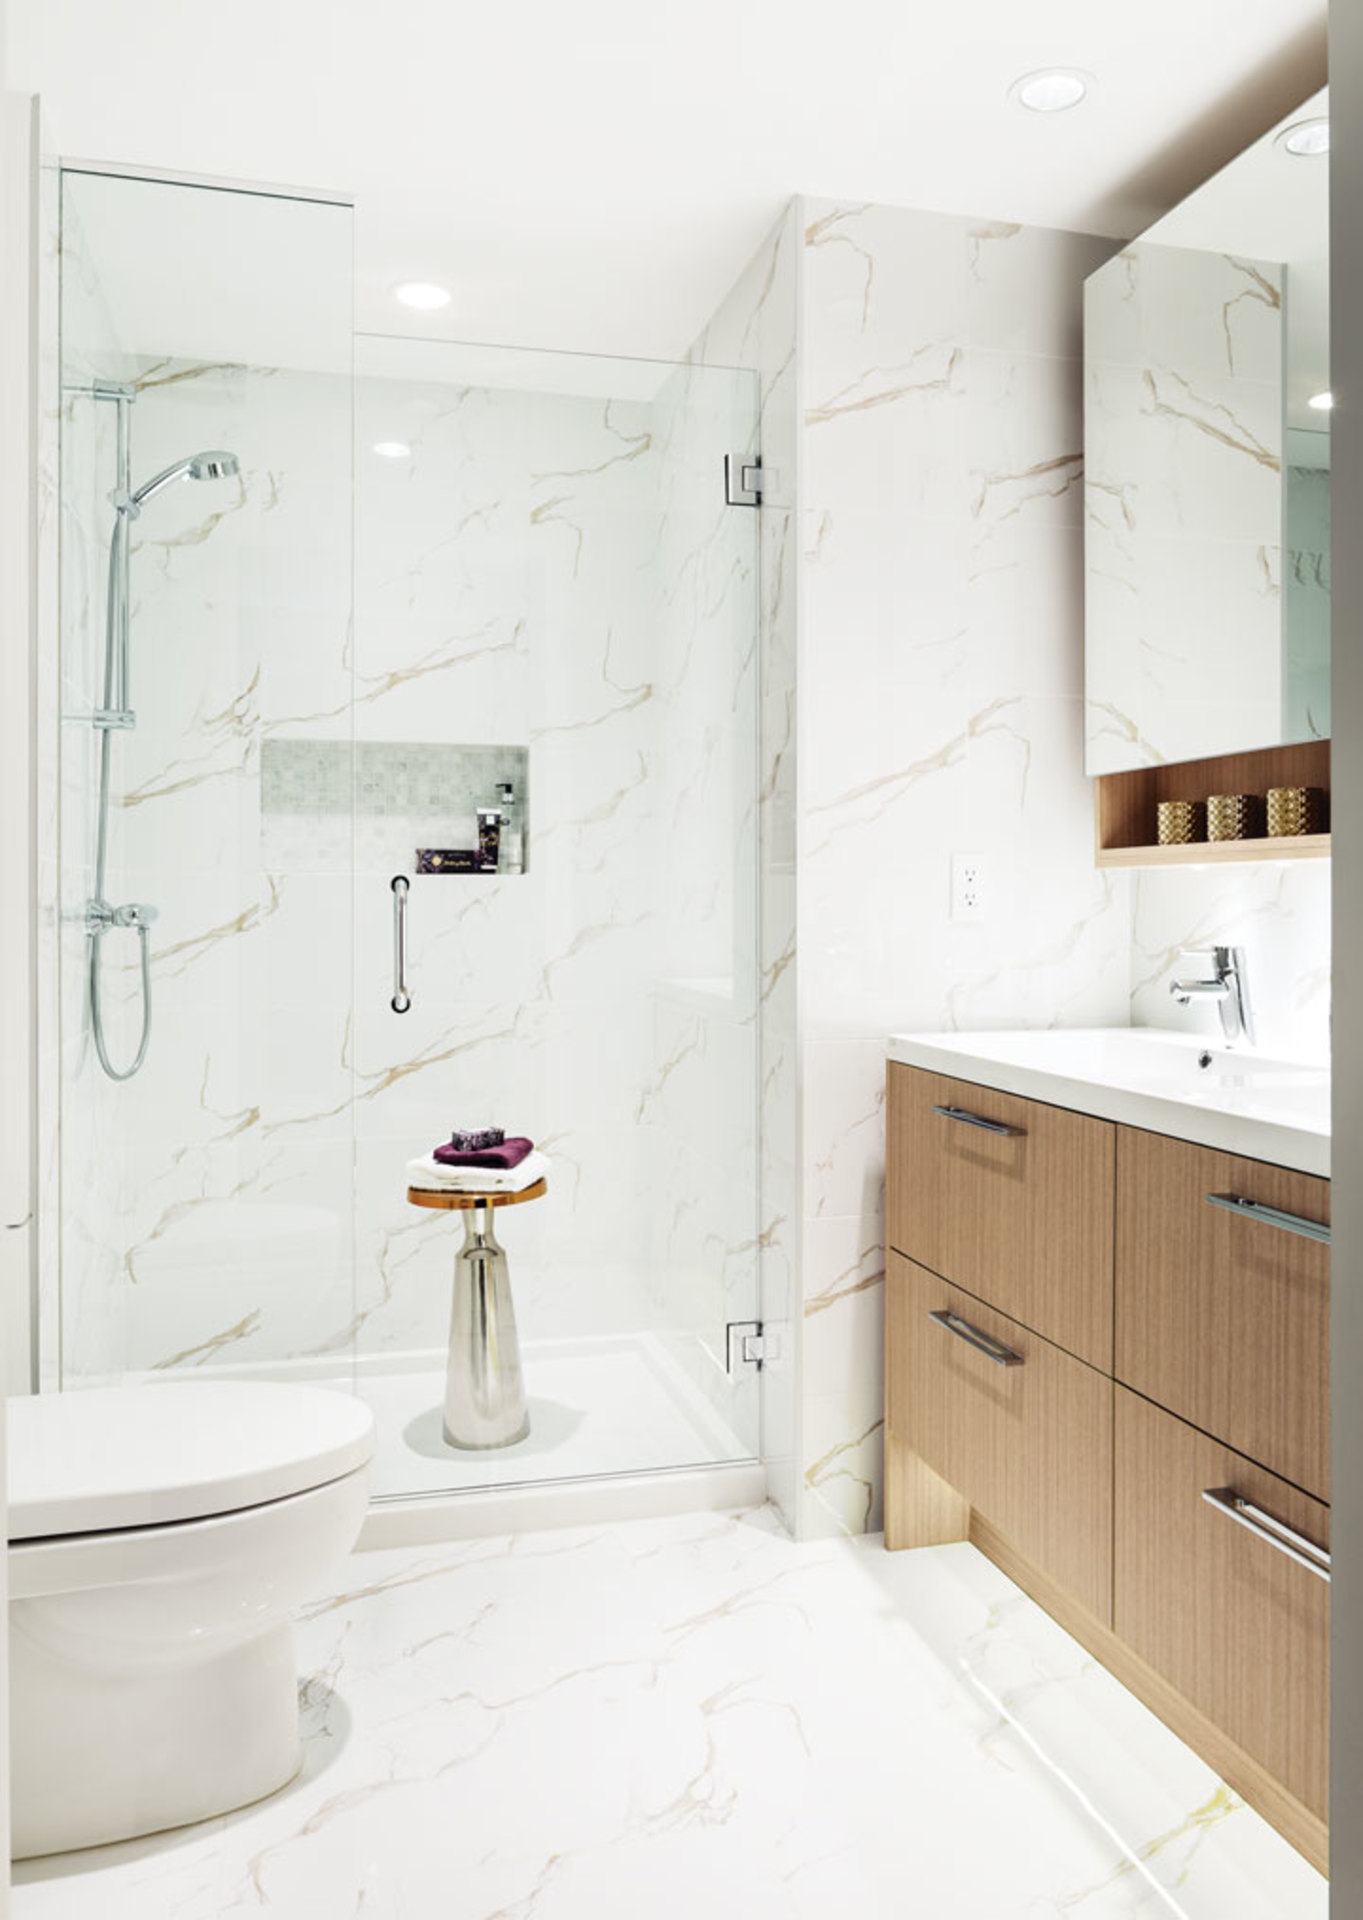 orchid-gallery-bathroom at #909 - 5580 No 3 Road,